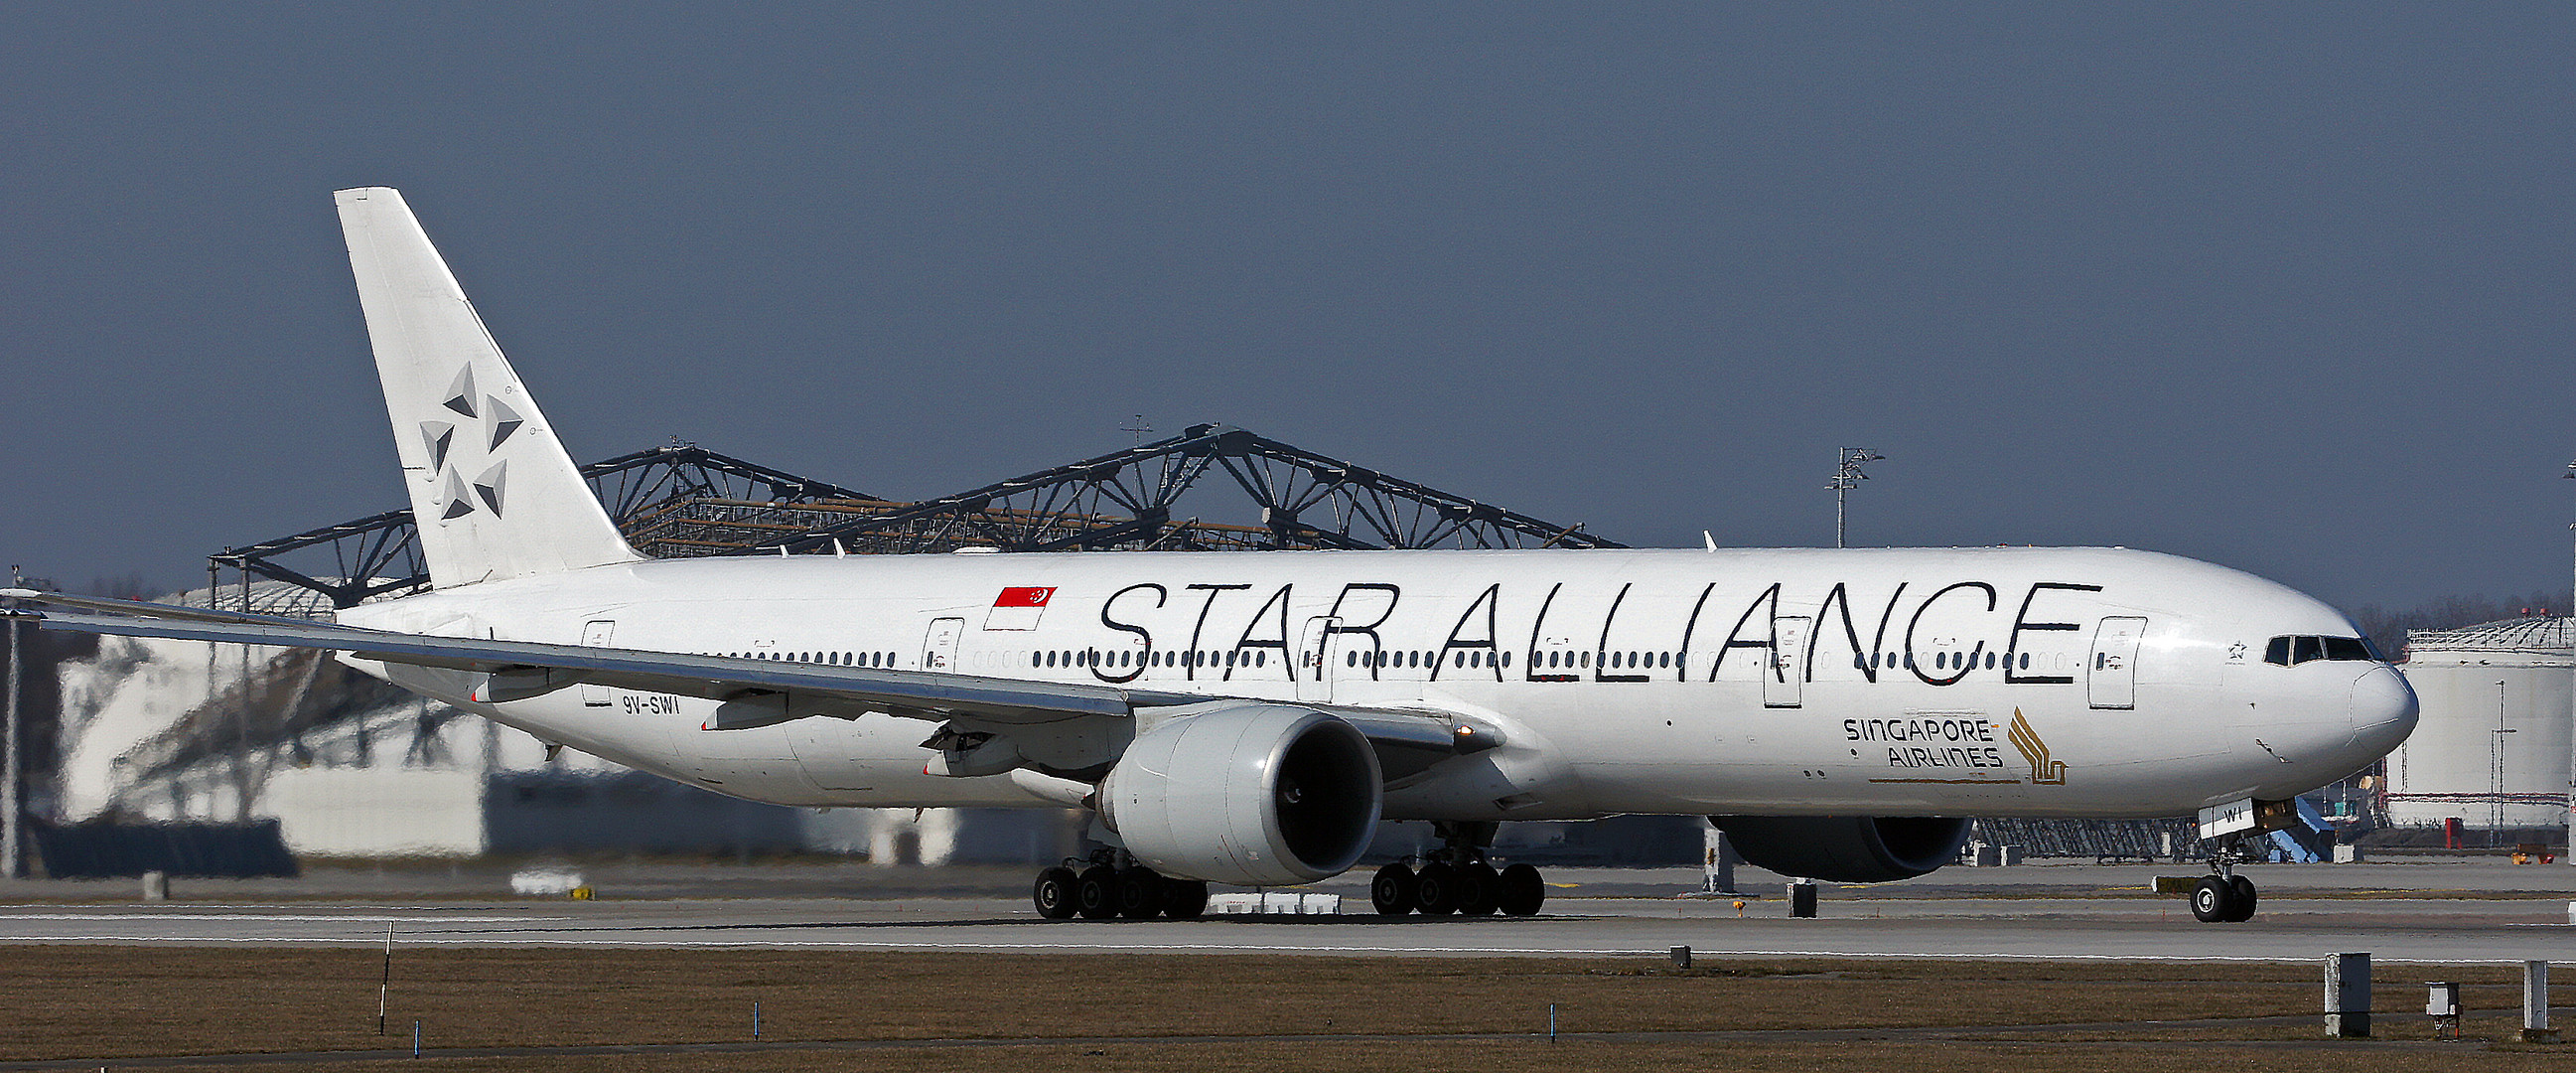 SINGAPORE AIRLINES / STAR ALLIANCE